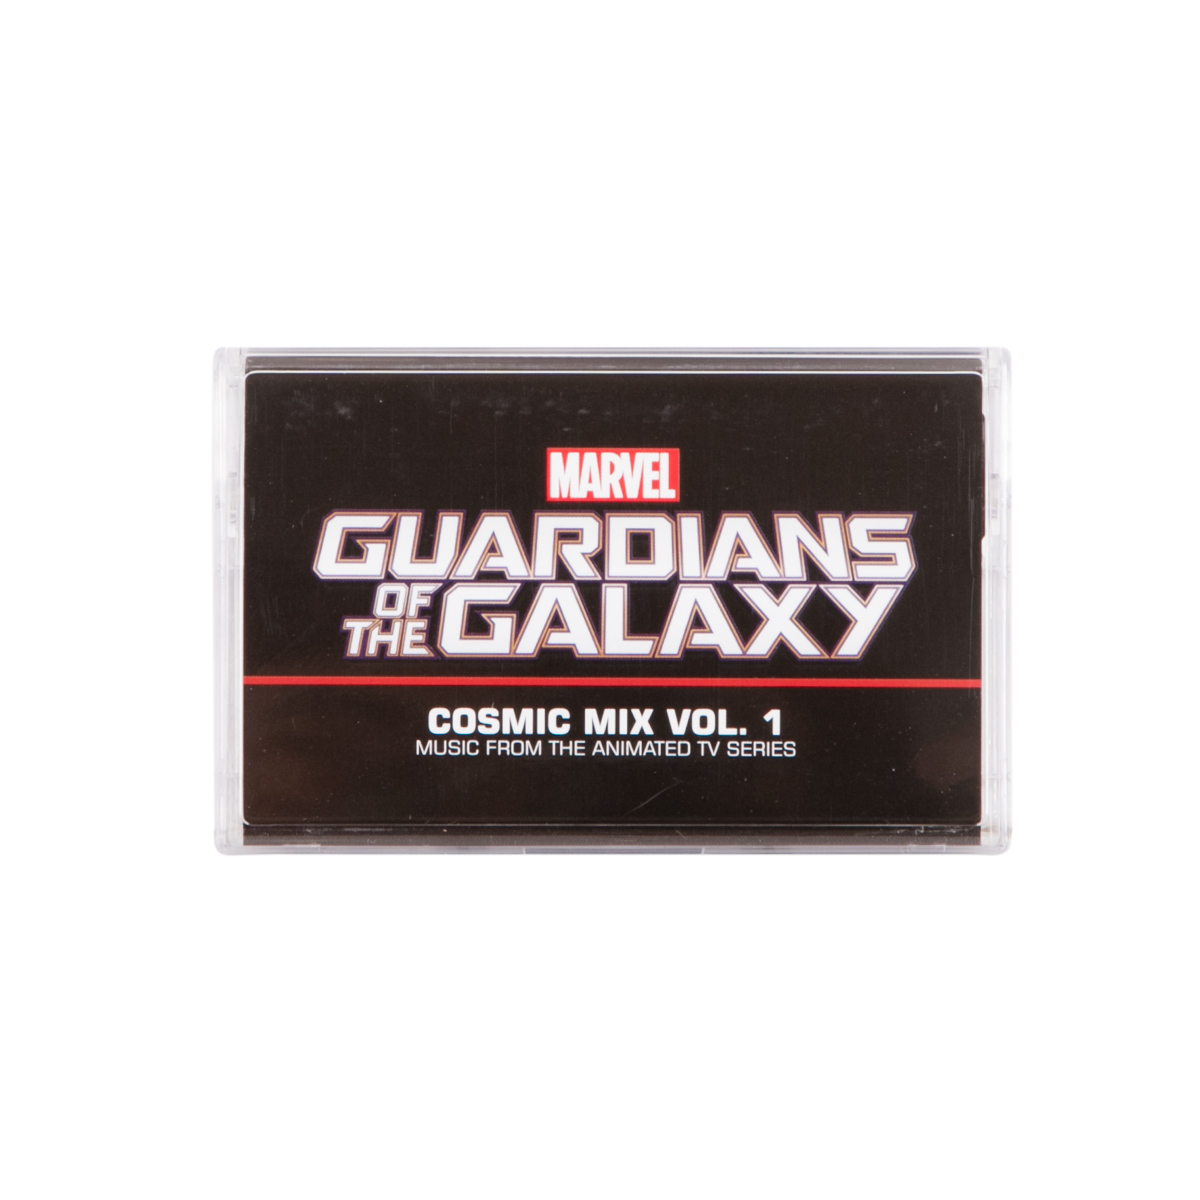 Guardians of the Galaxy: Cosmic Mix, Vol. 1 Cassette